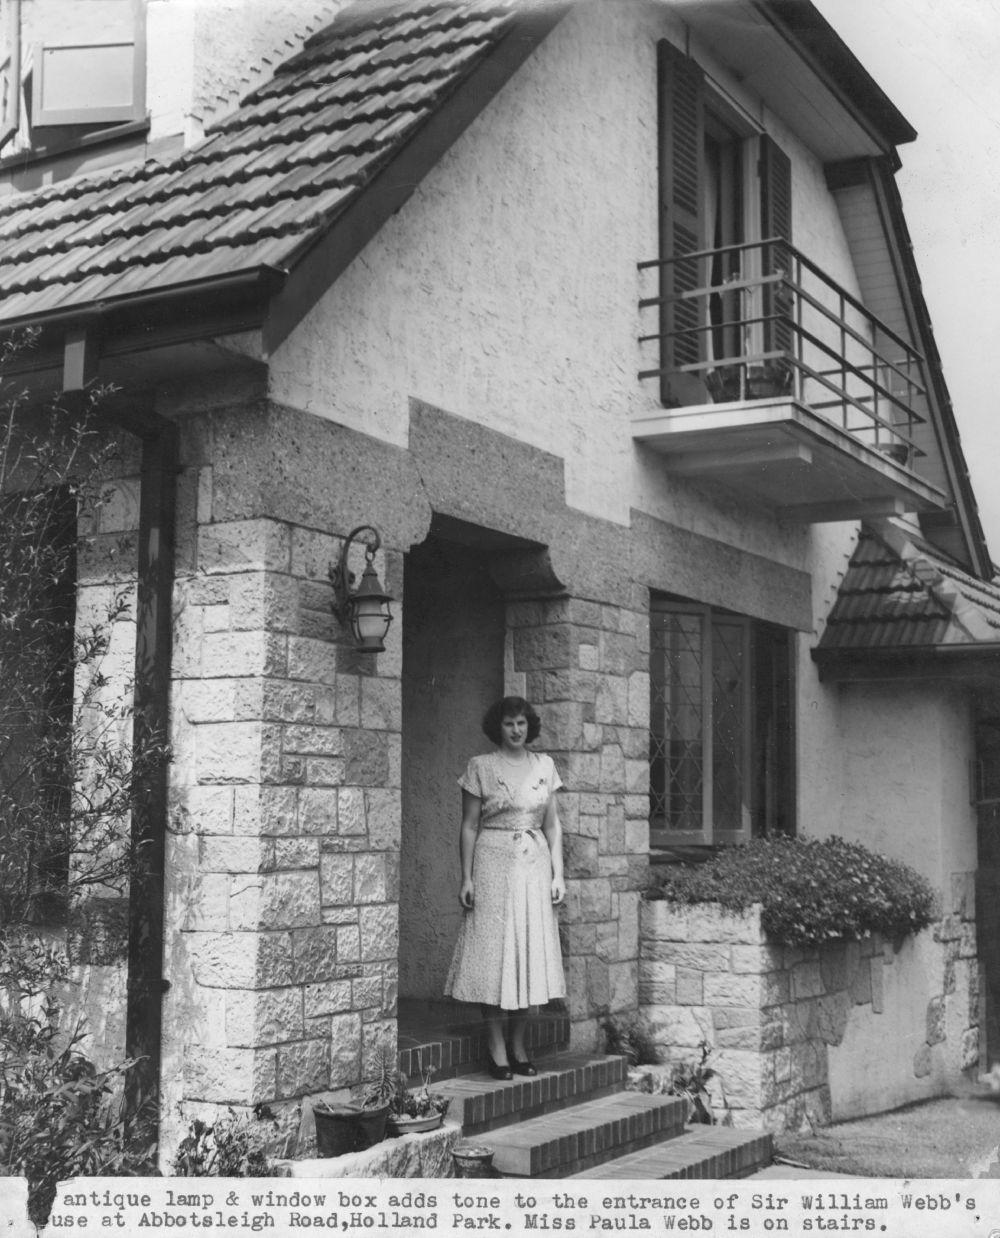 """This is an image of the Front entrance to the Webb family residence in Holland Park, 1948. the caption reads """"antique lamp & window box adds tone to the entrance of Sir William Webb's house at Abbotsleigh Road, Holland Park. Miss Paula Webb is on stairs"""""""